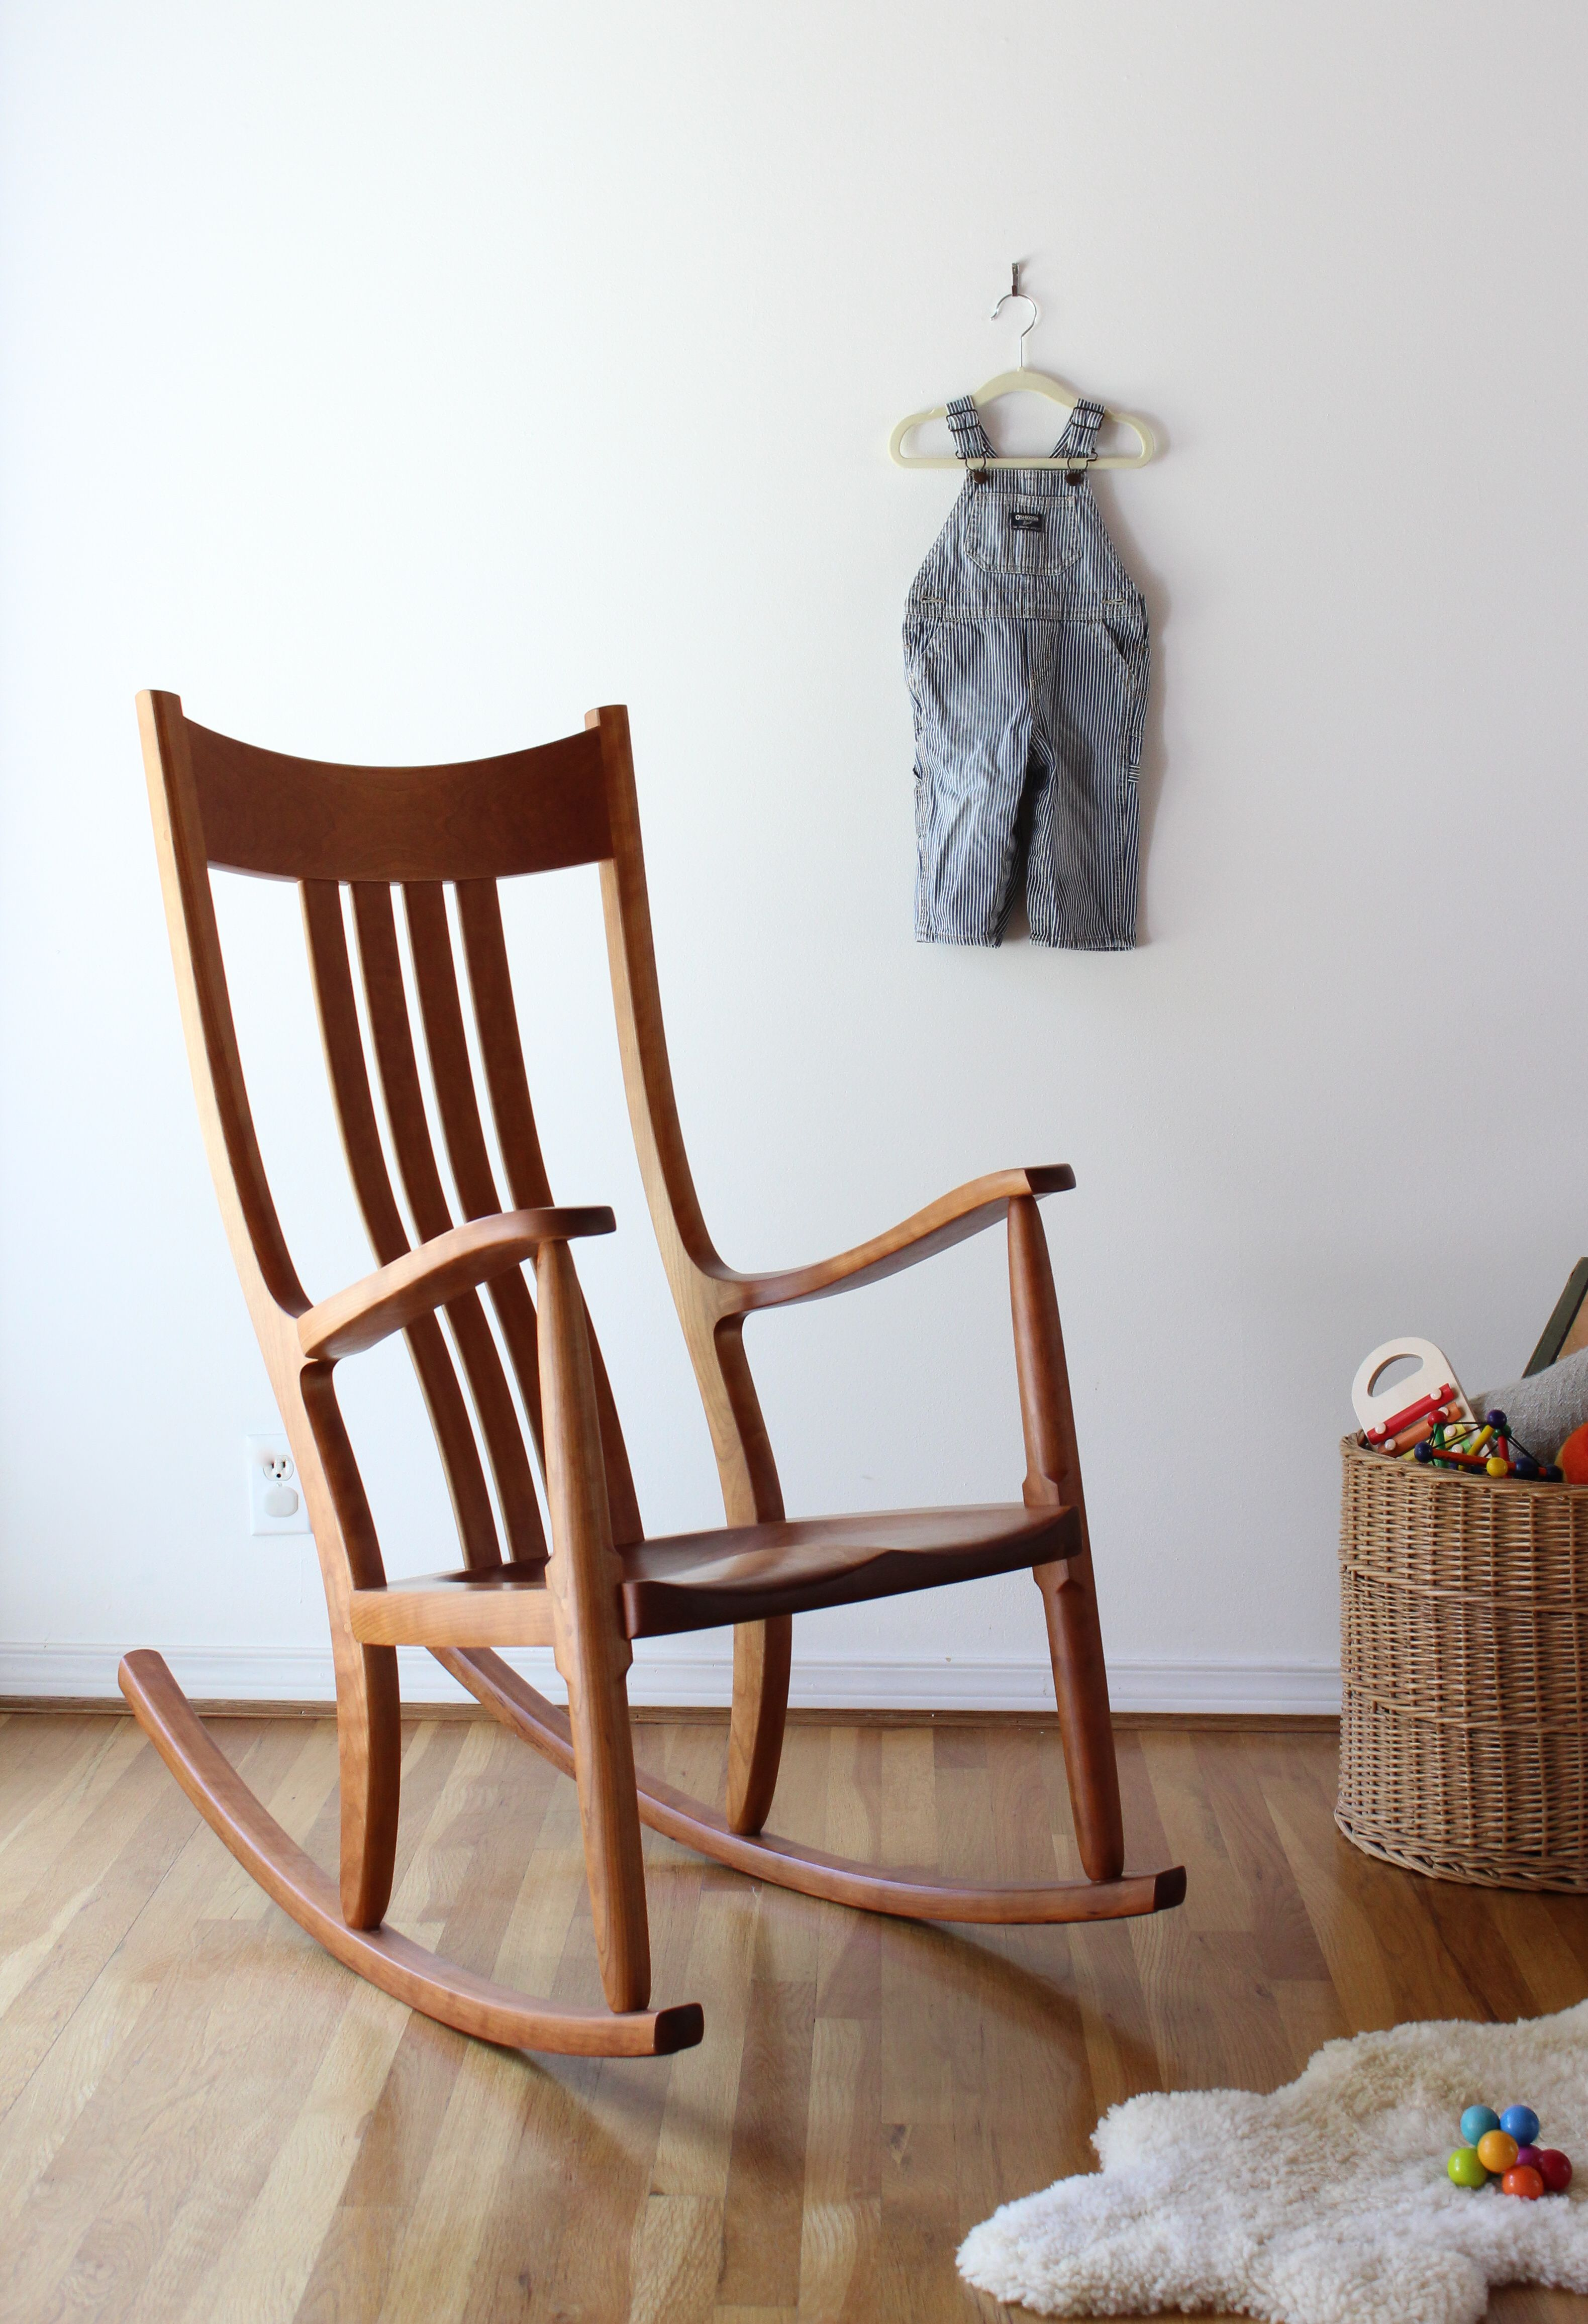 Magnificent Handmade Comfortable Wood Rocking Chairs For Nursery And Download Free Architecture Designs Estepponolmadebymaigaardcom